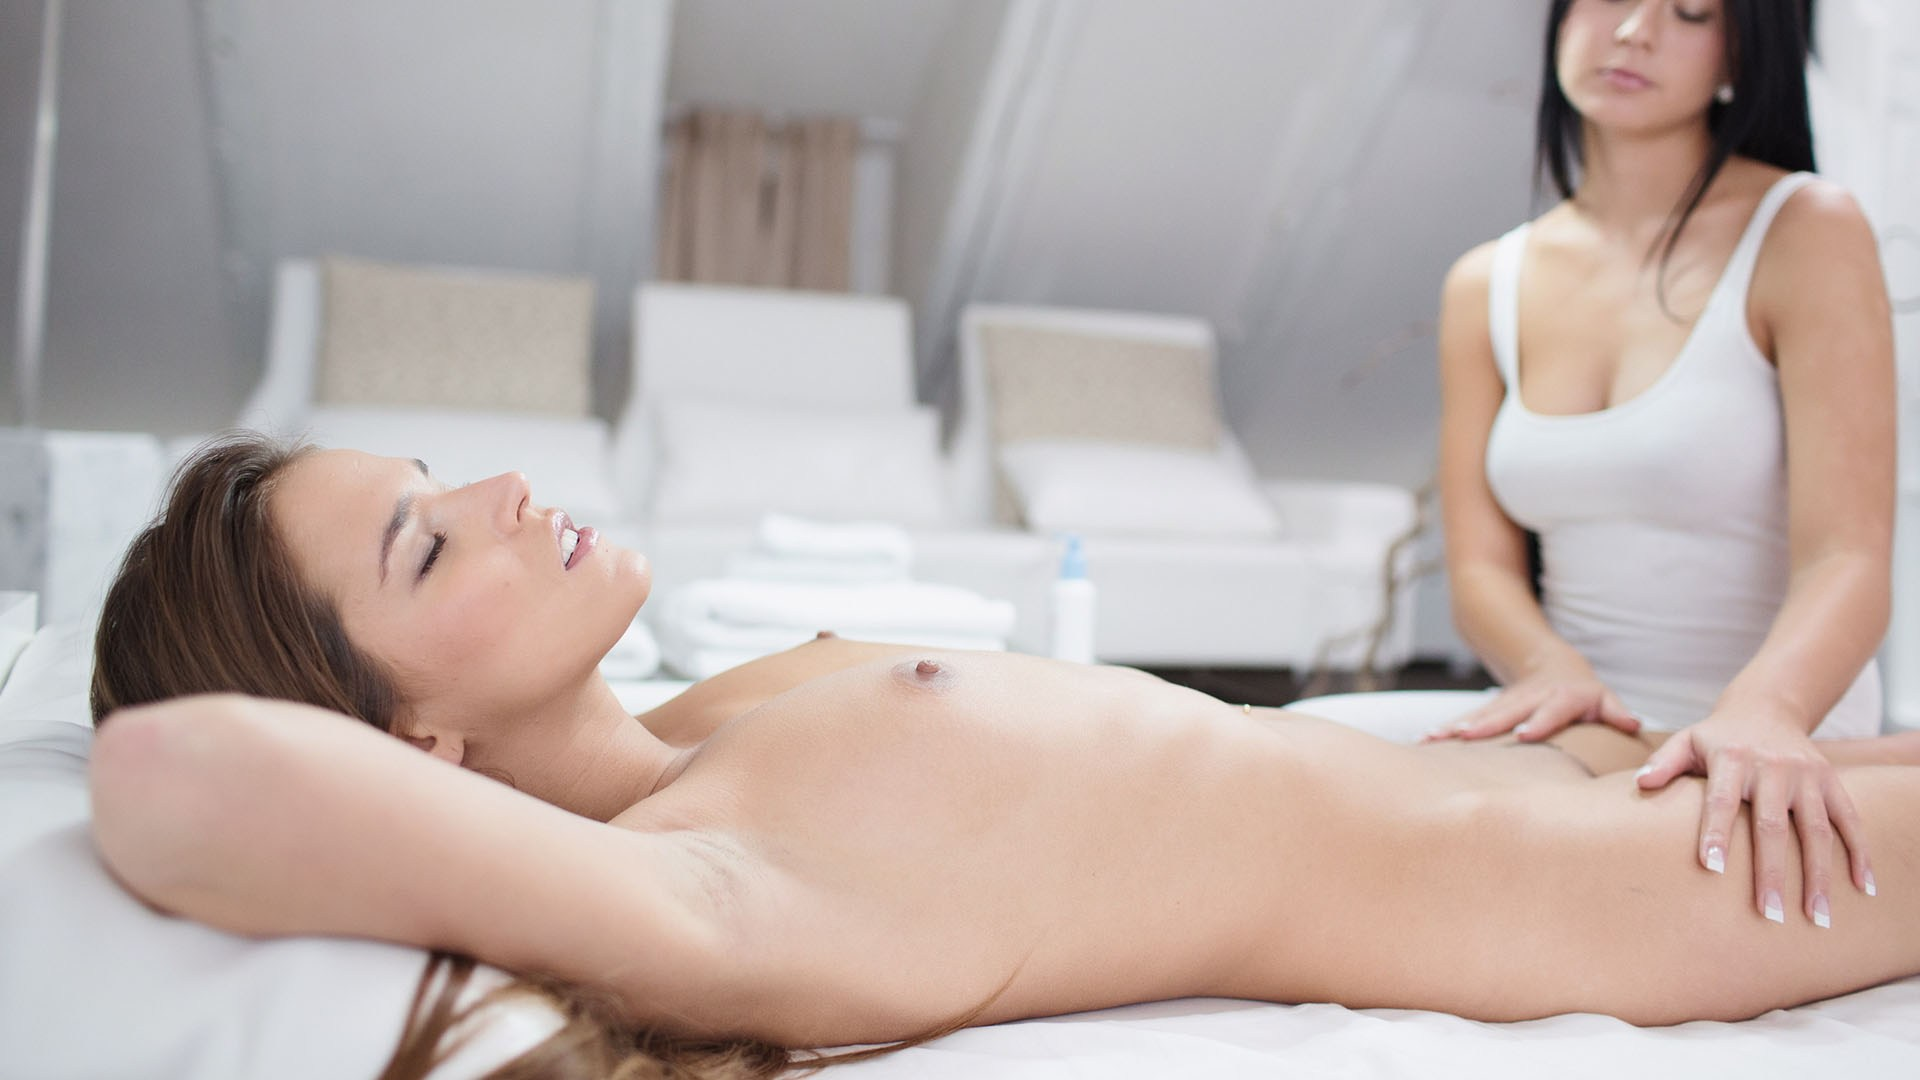 Massage masseuse sex tube and porn videos your